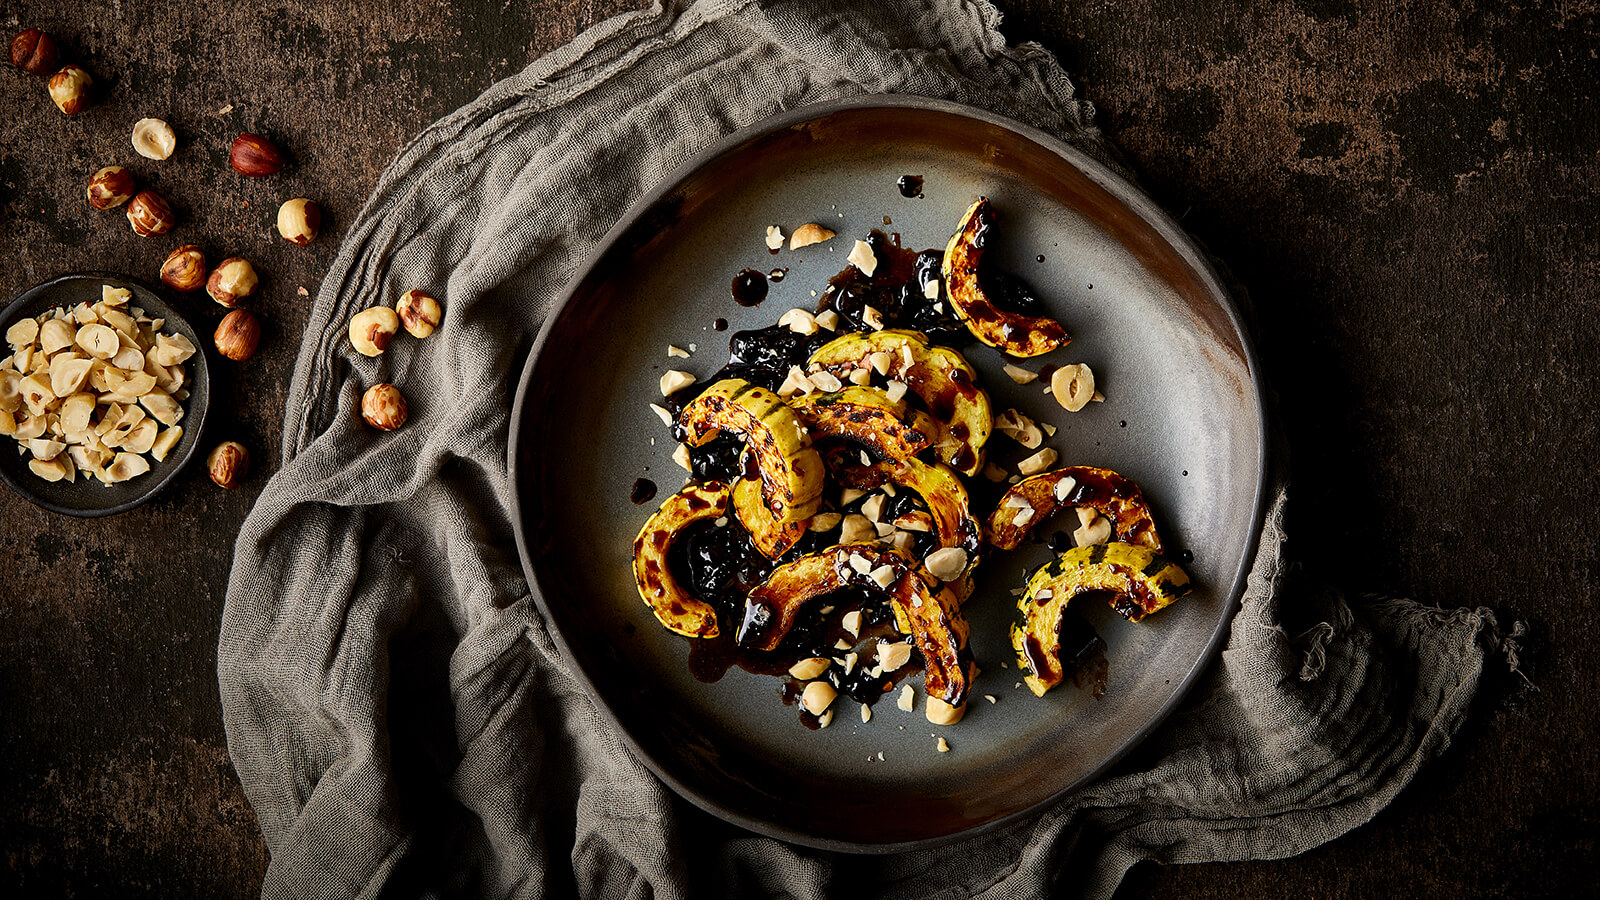 Roasted Fall Squash with Cherry Balsamic Agrodolce and Hazelnuts